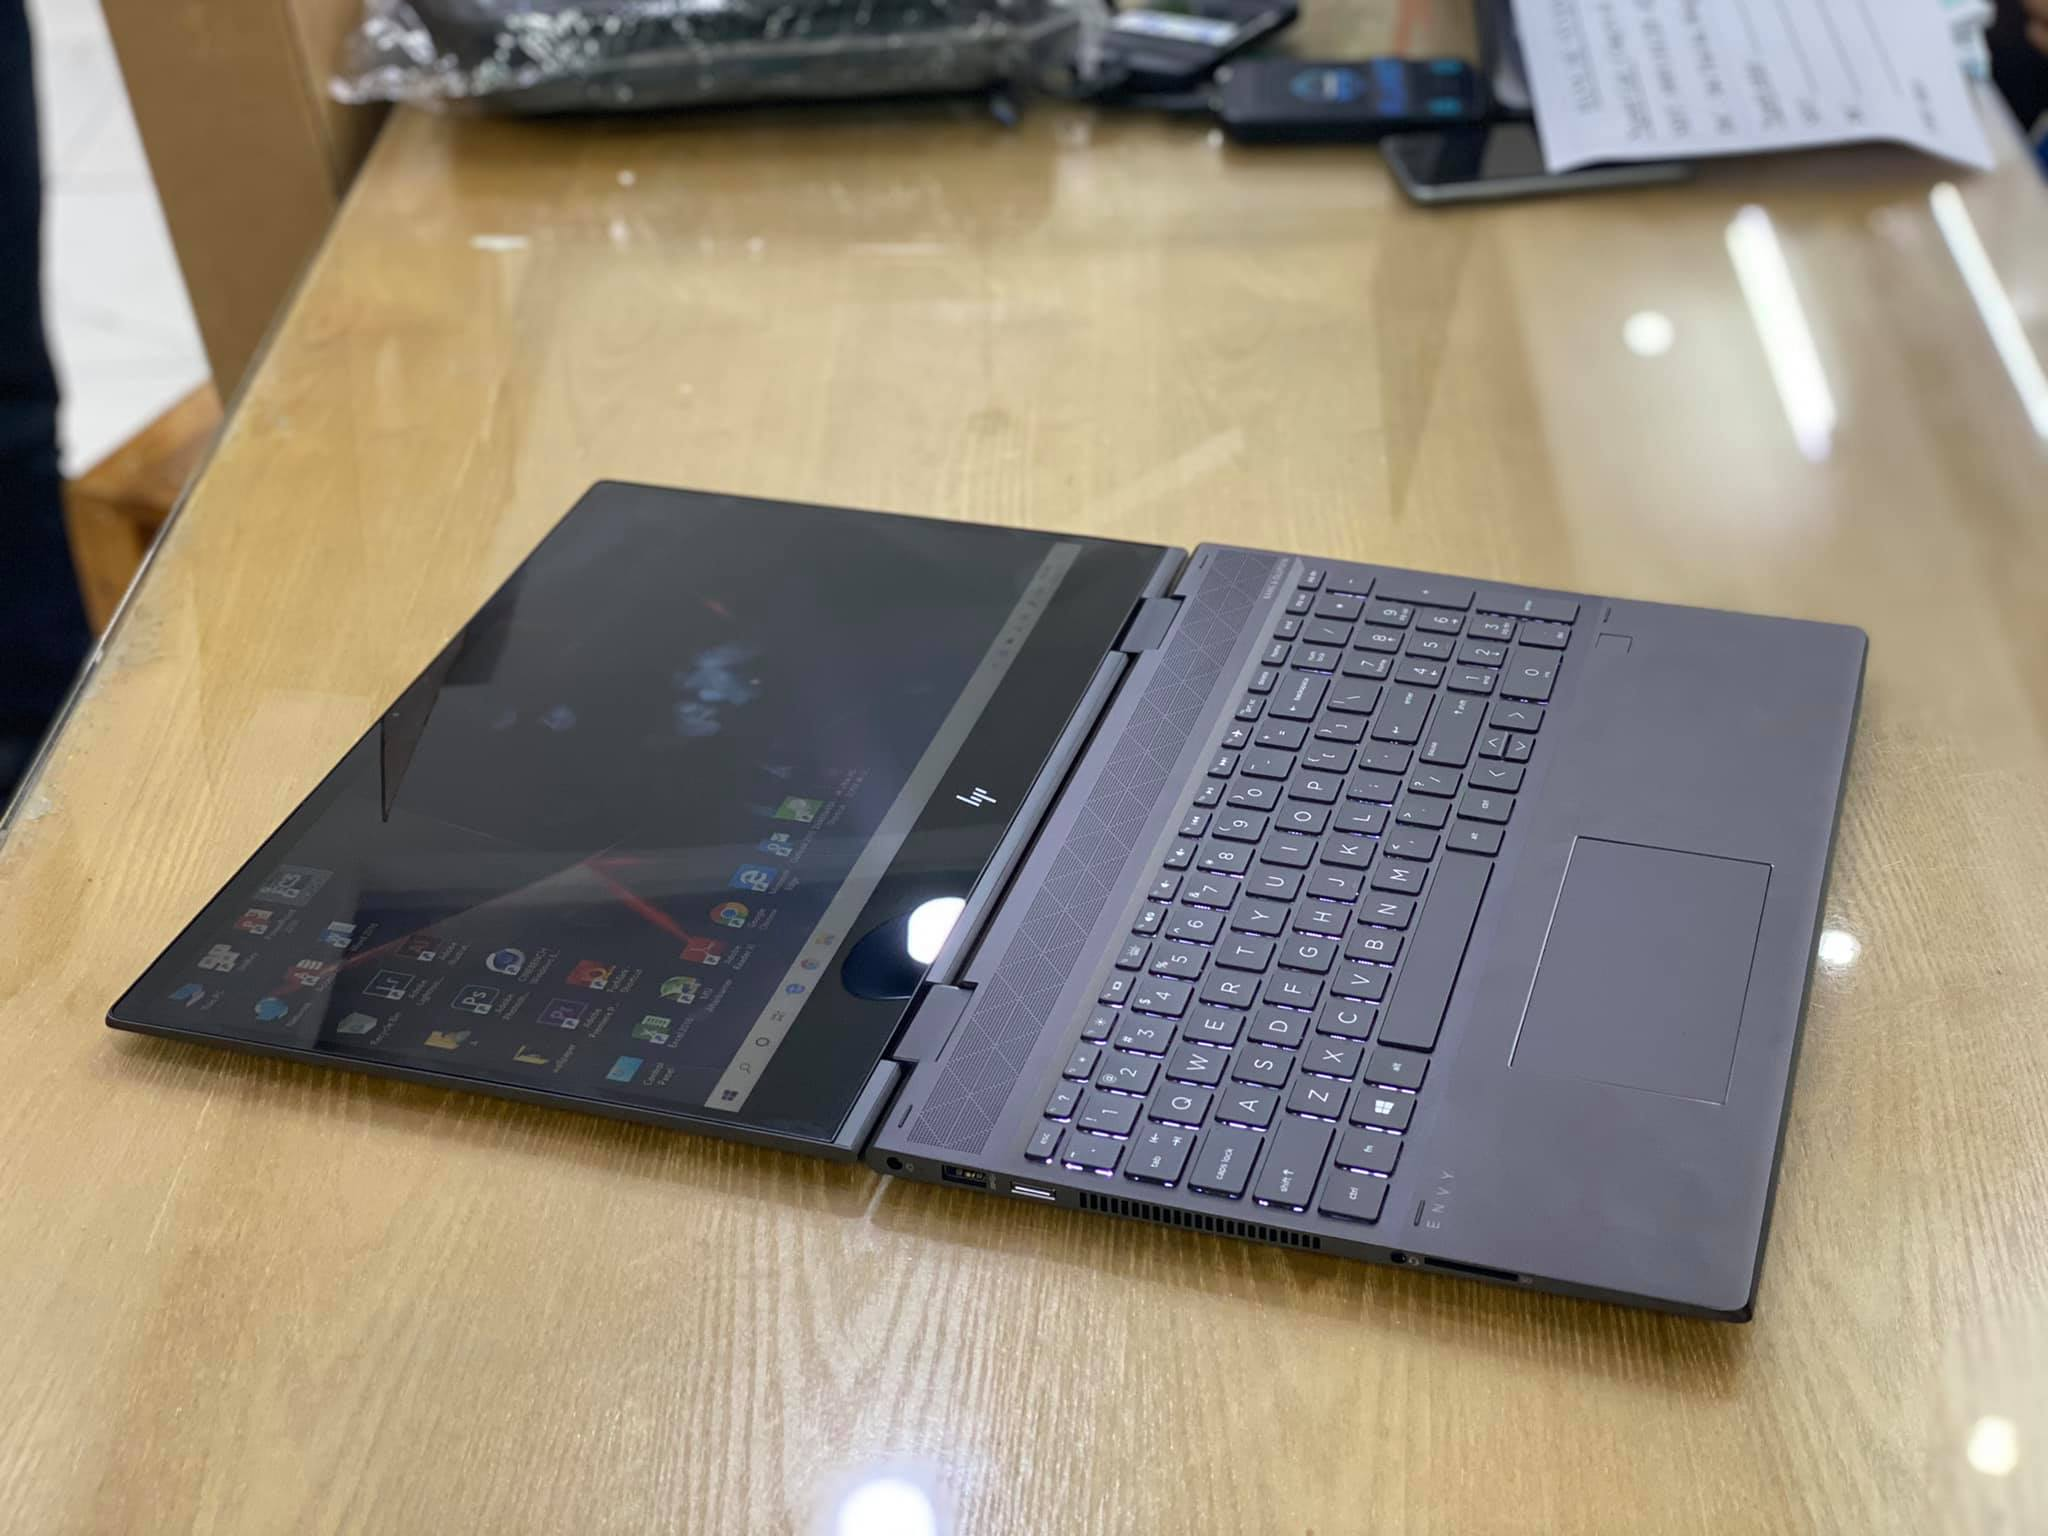 HP ENVY x360 Laptop - 15-ds1010wm-9.jpg